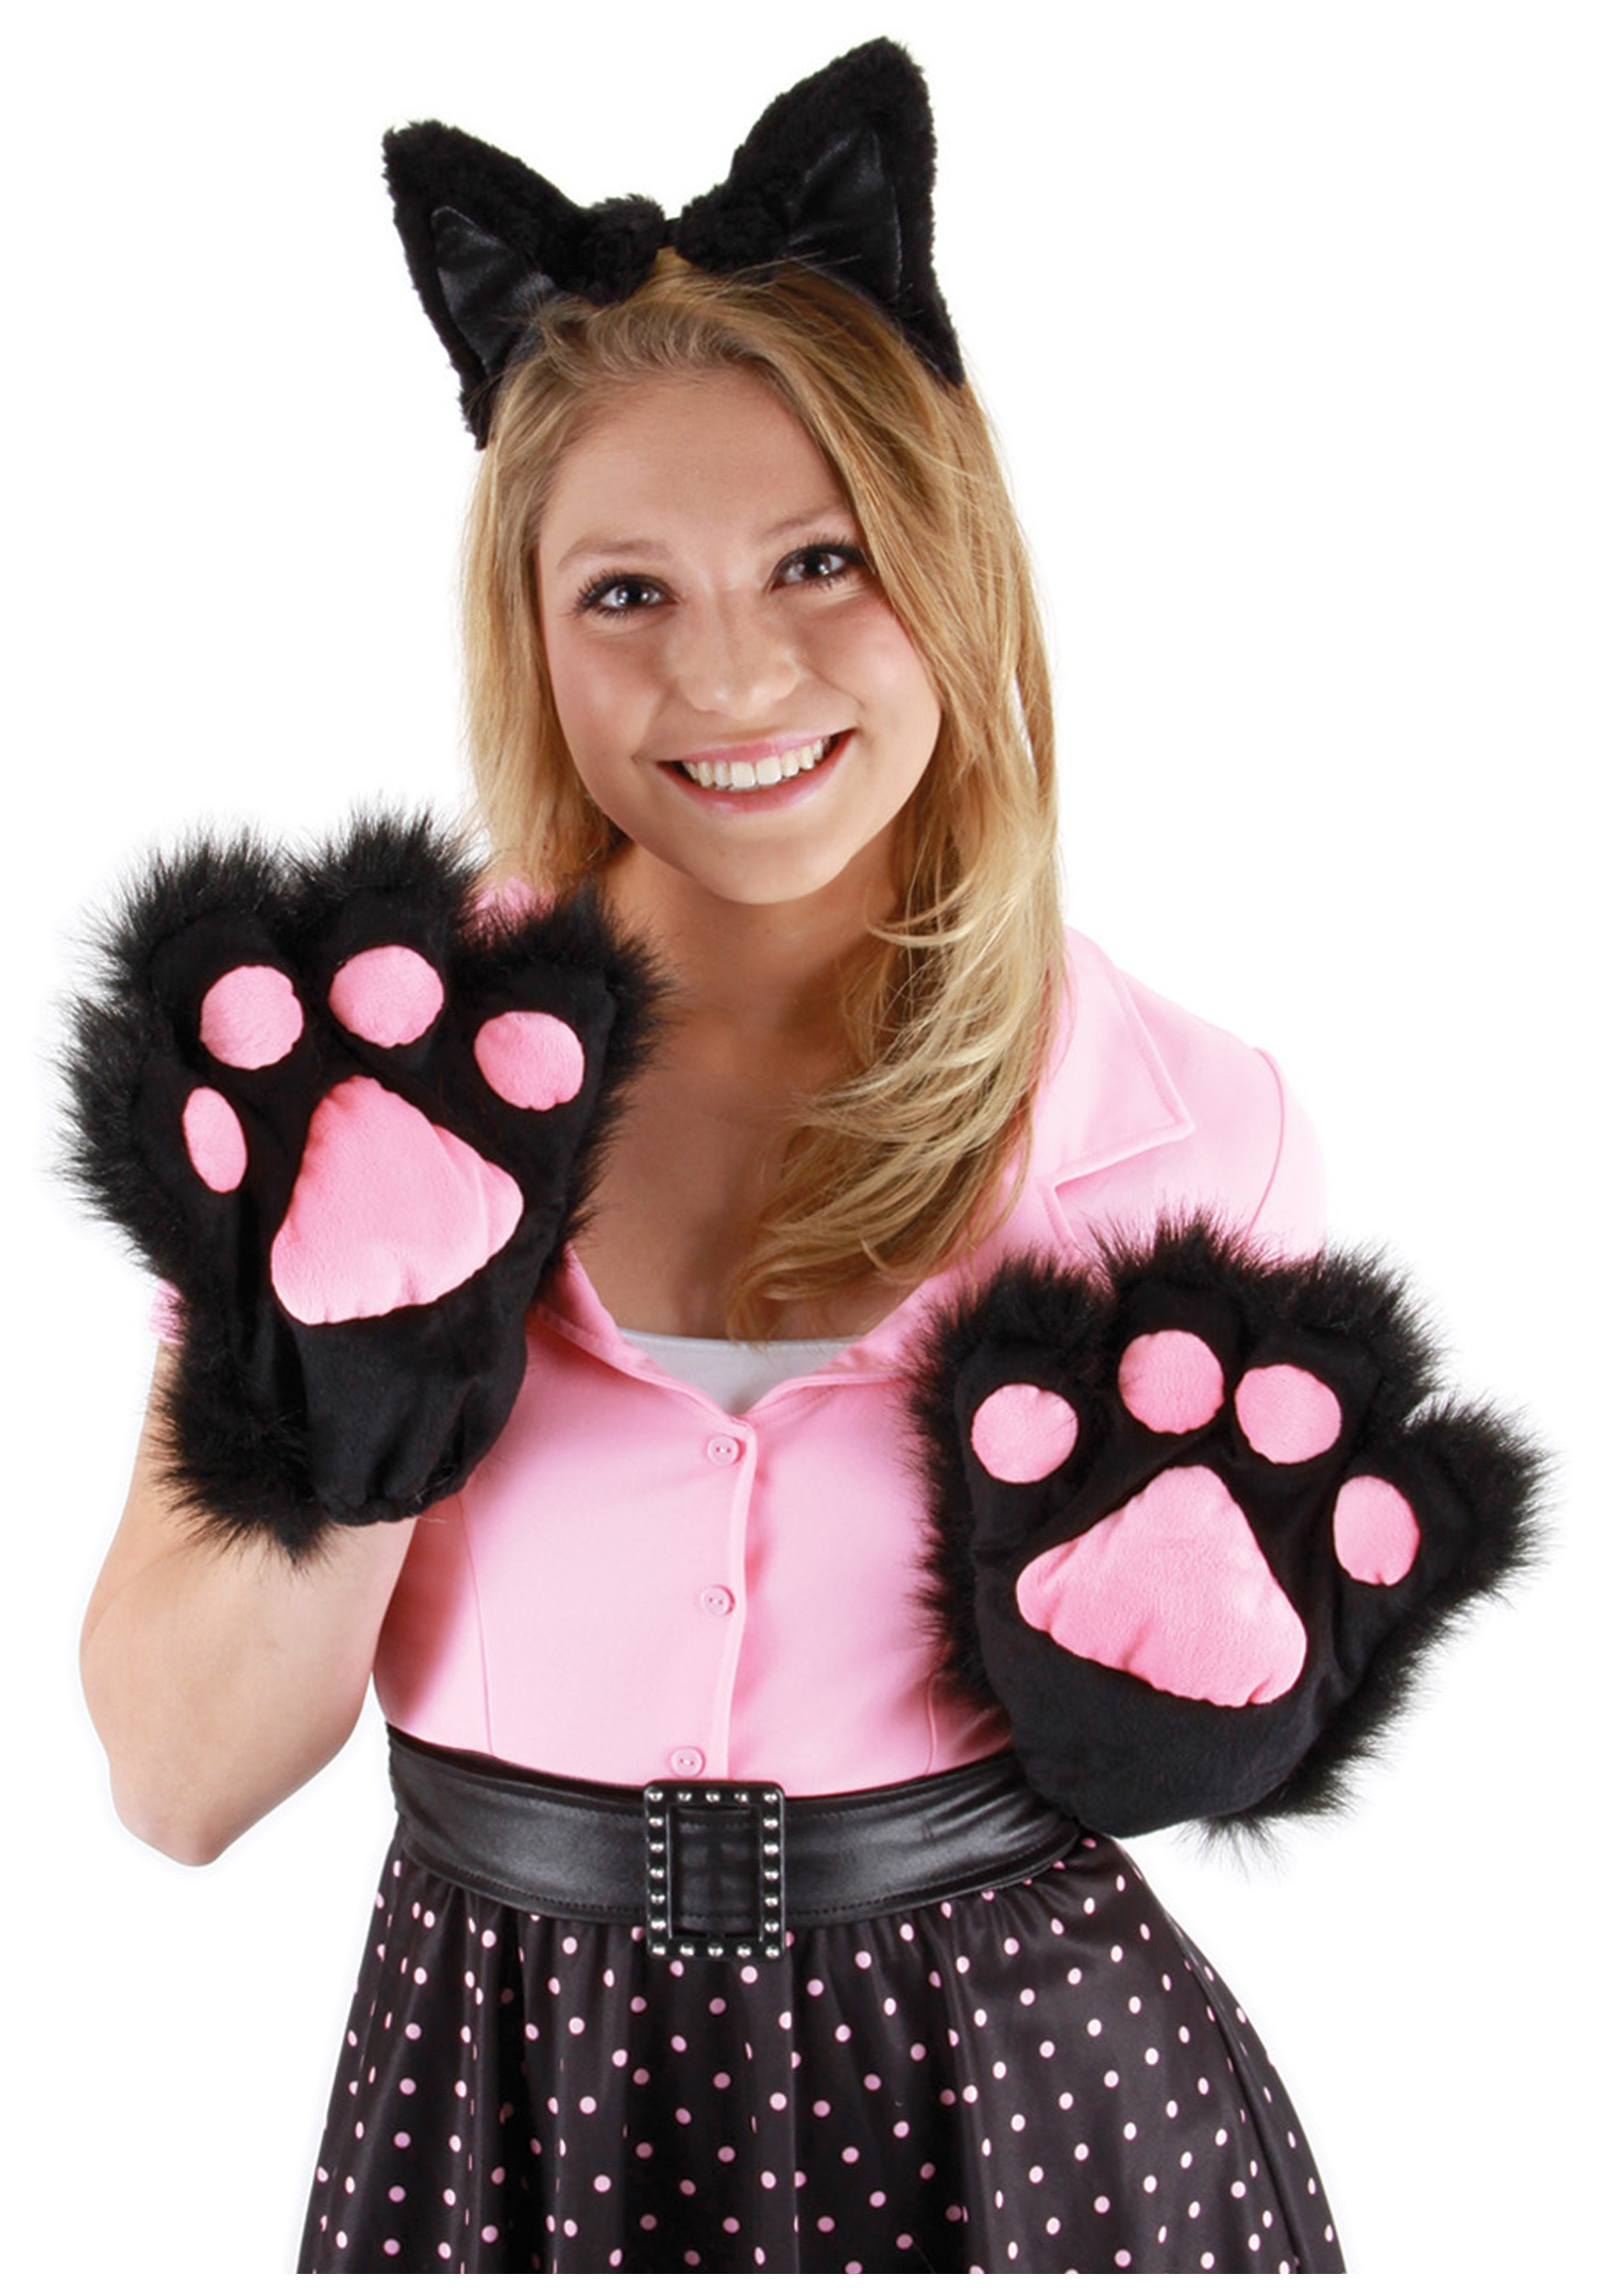 Soft Black Kitty Paws Cat Costumes Womens Costumes  sc 1 st  Meningrey & Cat Paws Costume - Meningrey